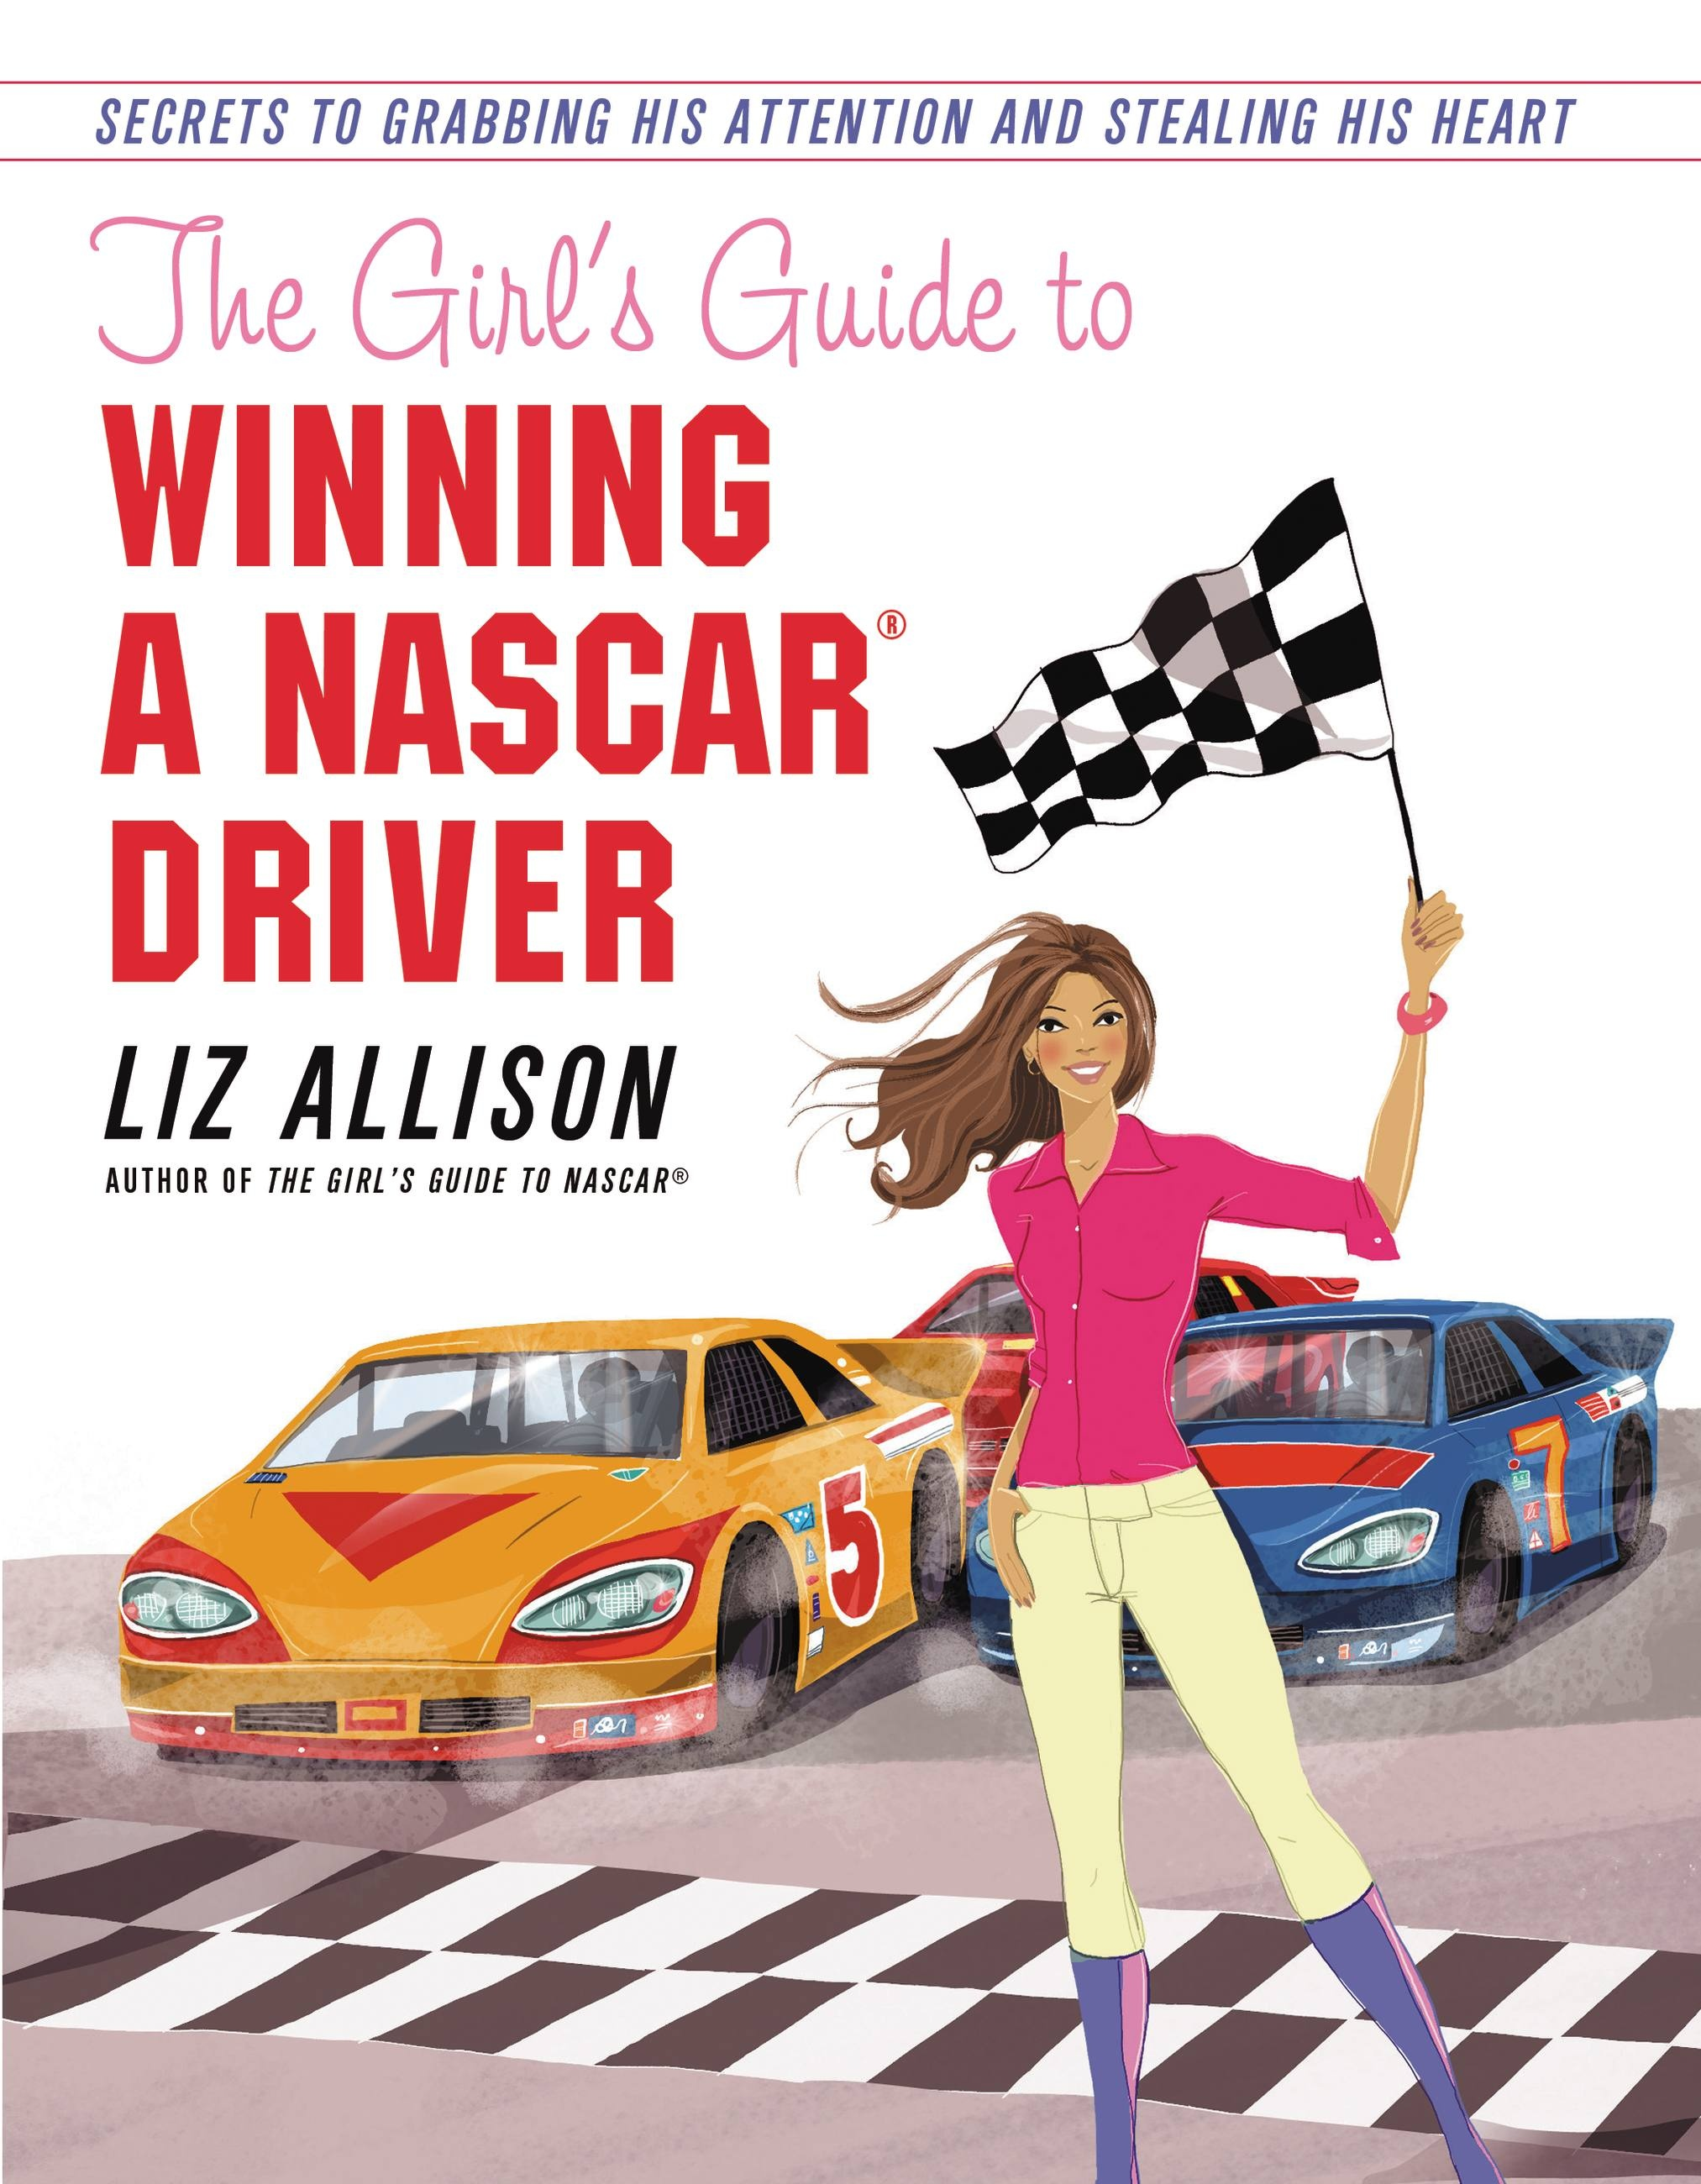 The Girl's Guide to Winning a NASCAR(R) Driver